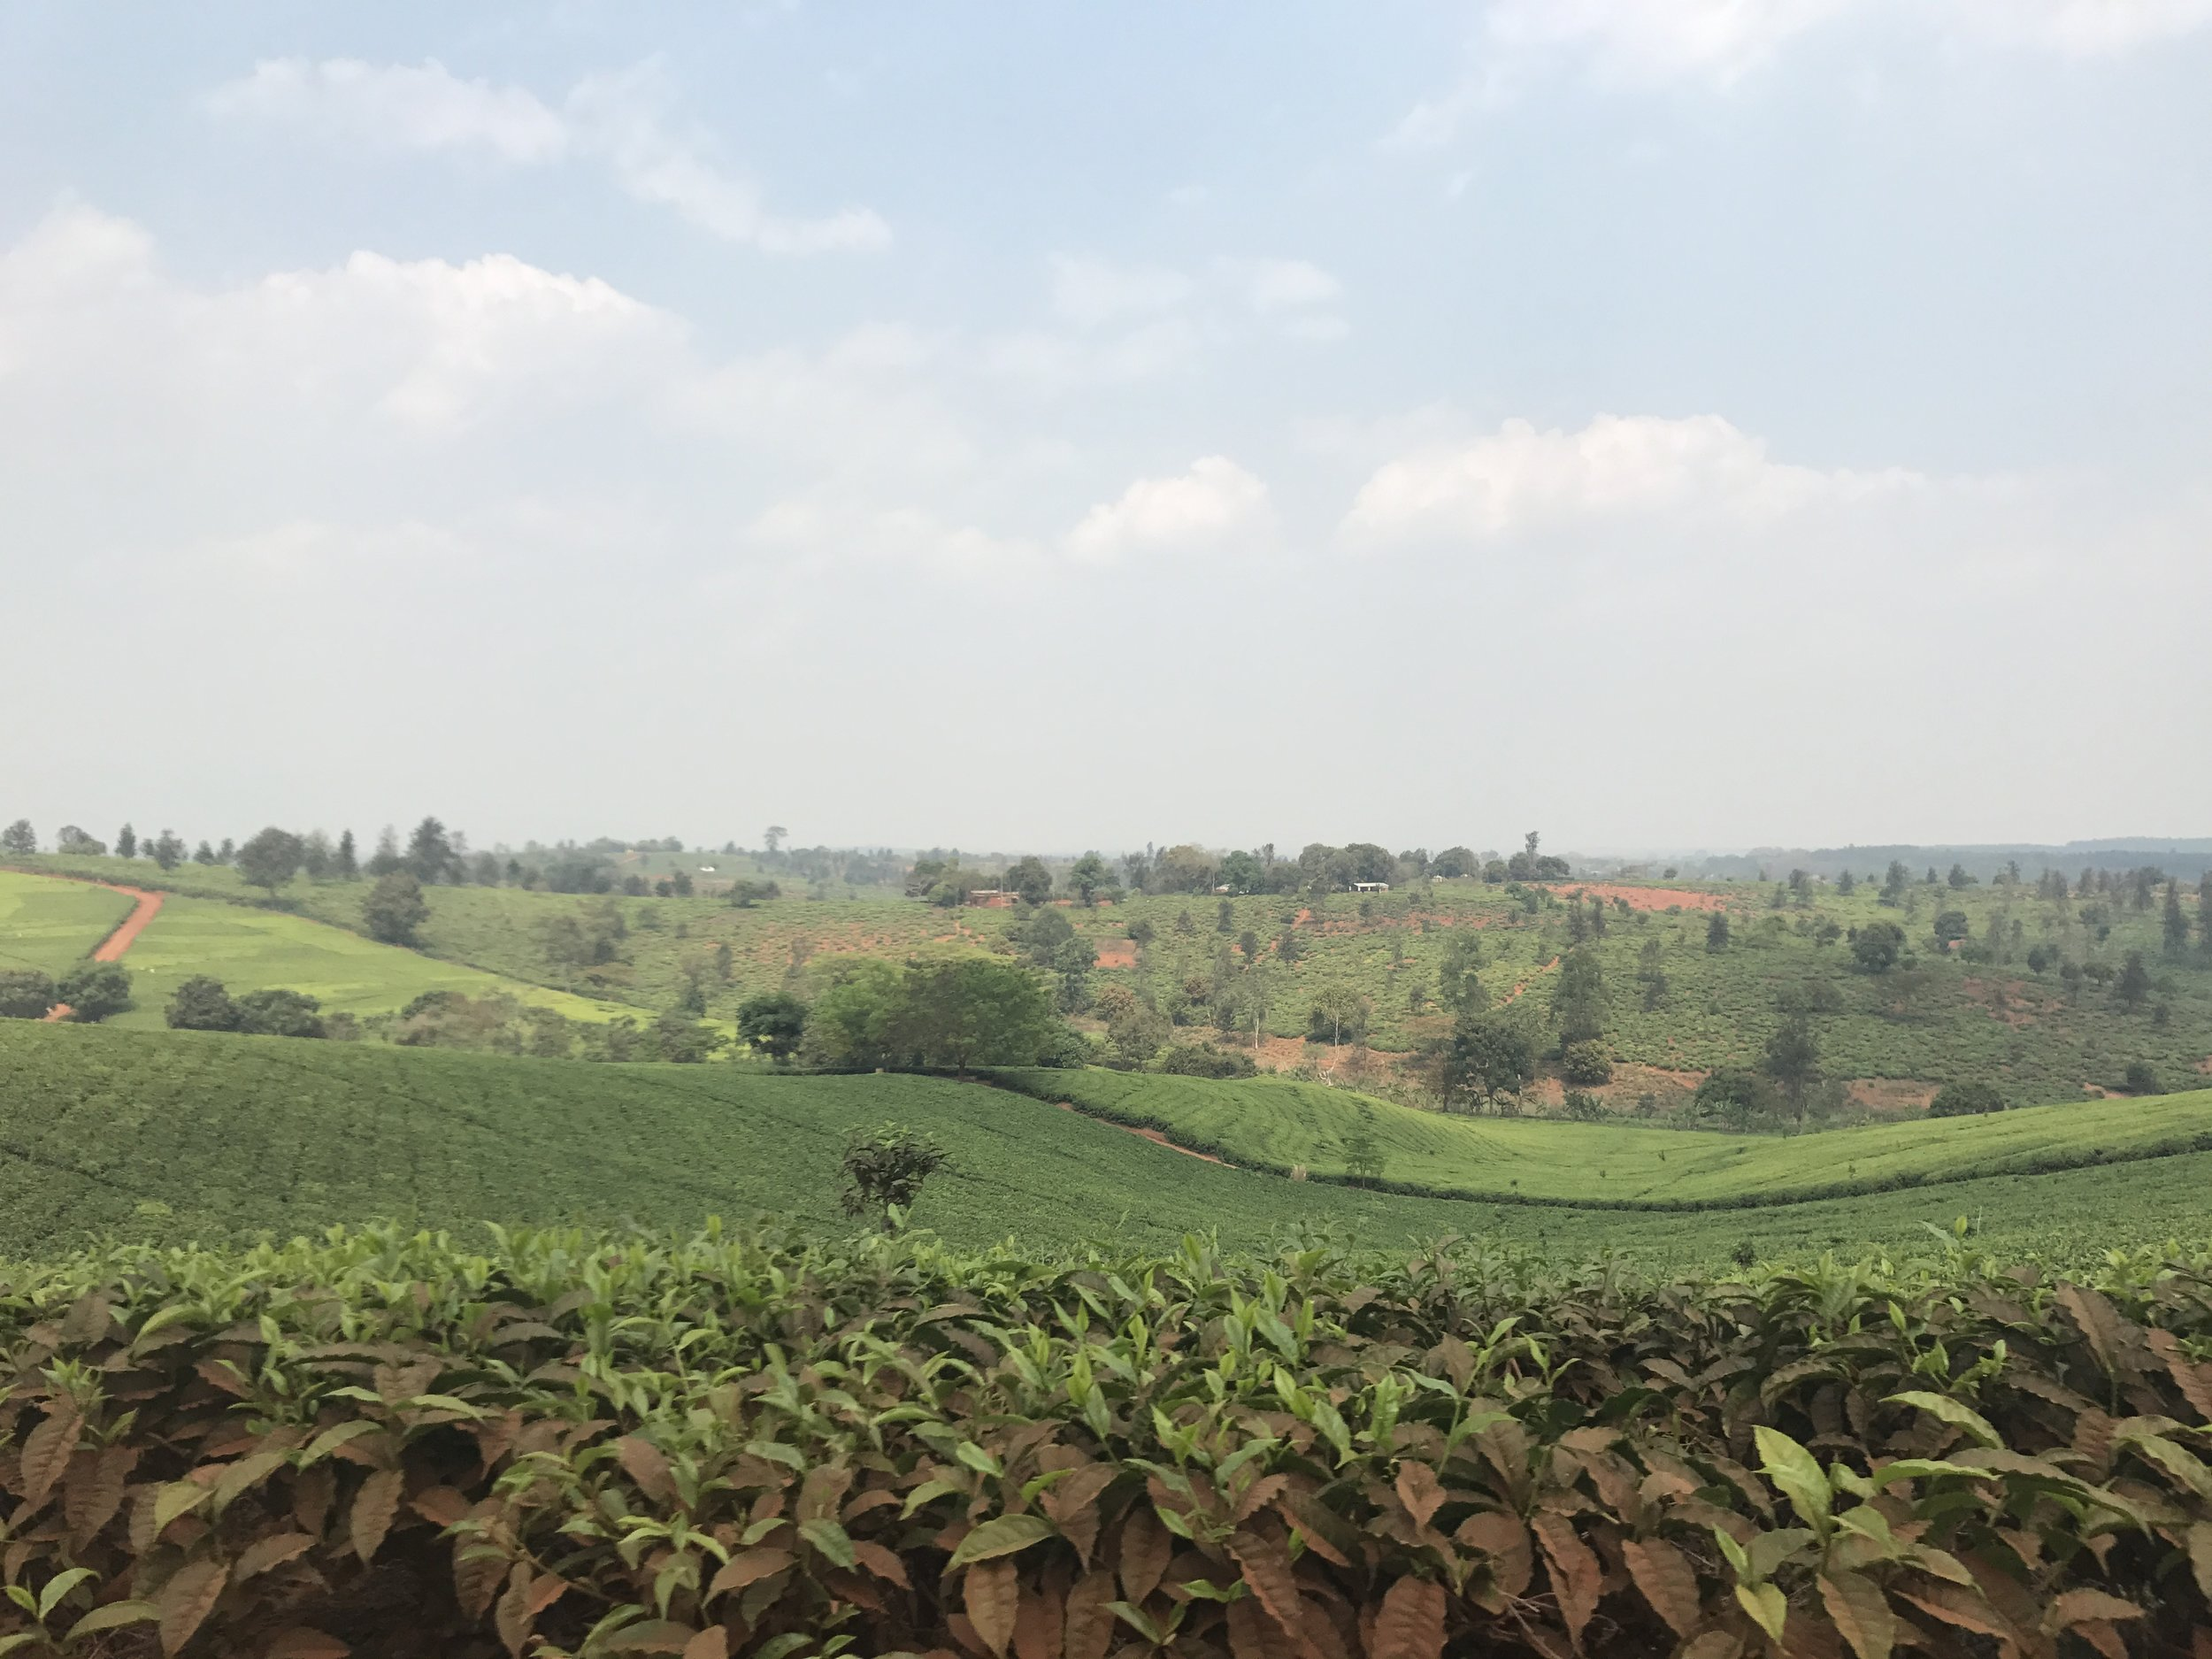 This is one of the only places in the country with the right climate to grow tea. No wonder it was popular with the Brits!